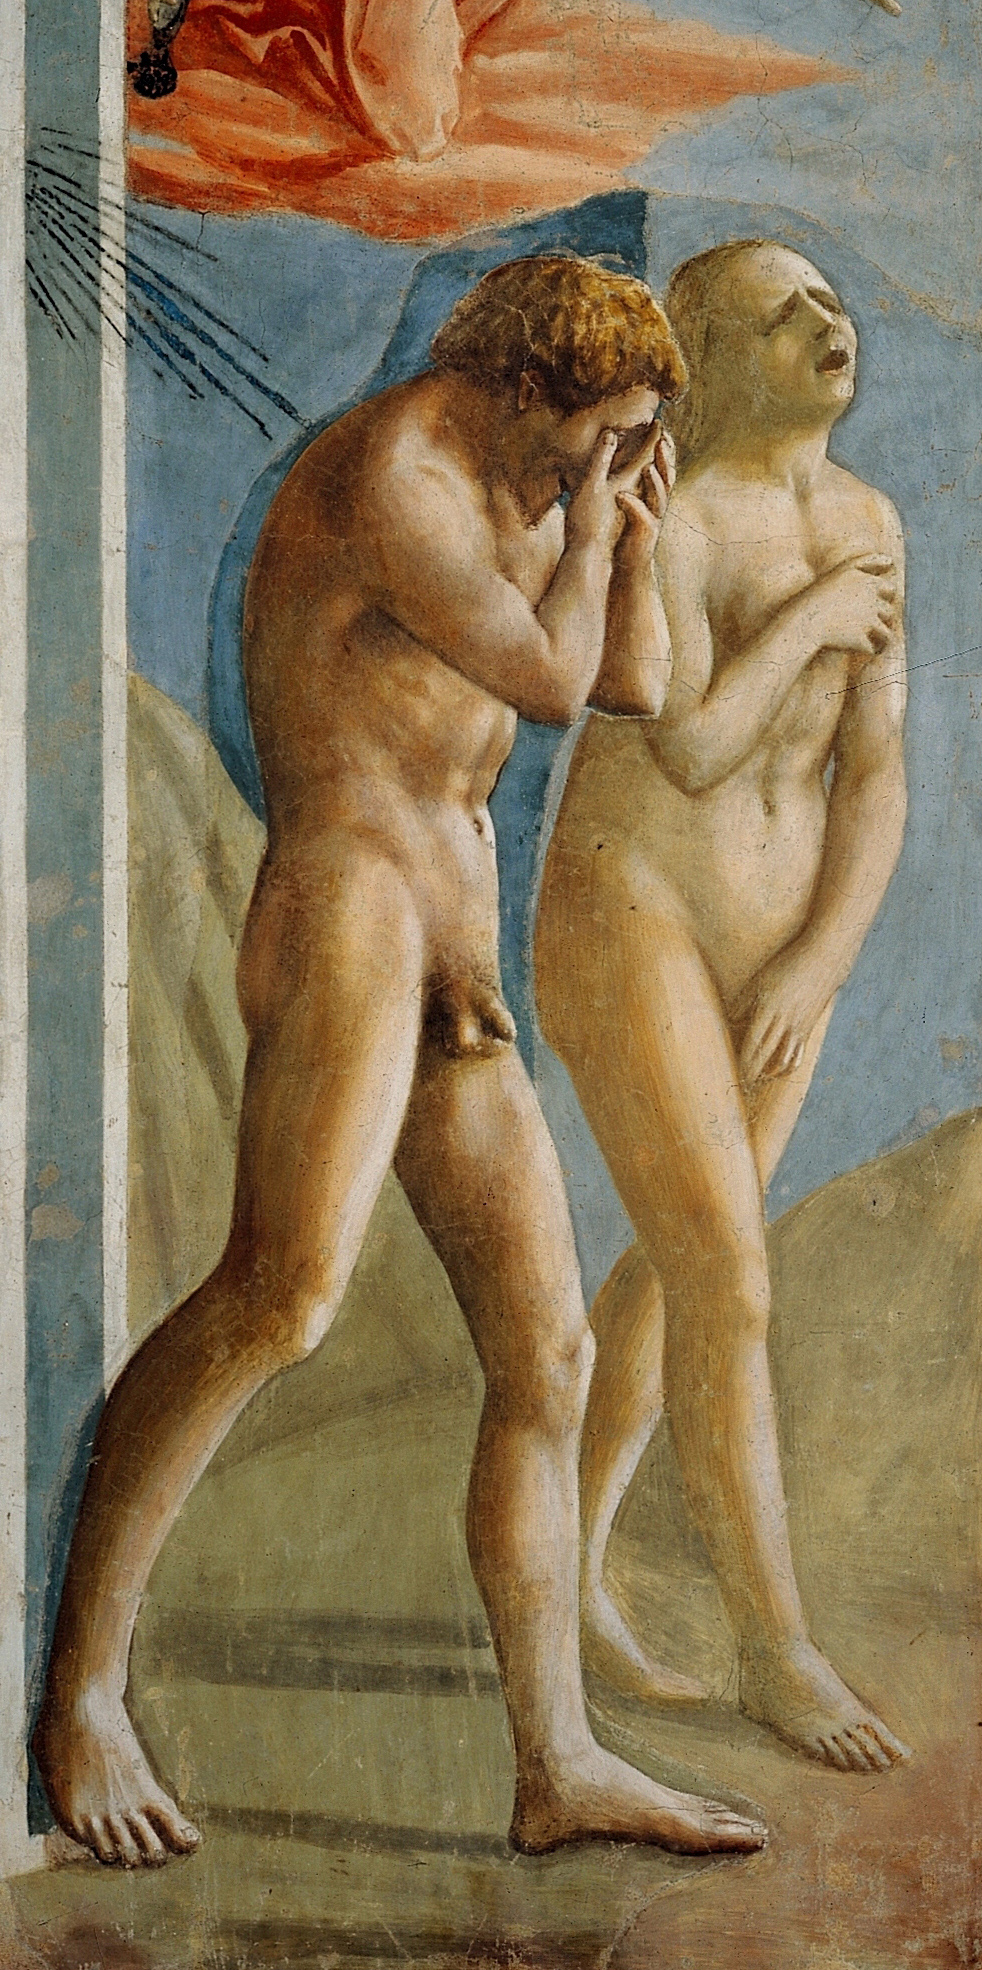 what is the relationship between man and woman in genesis